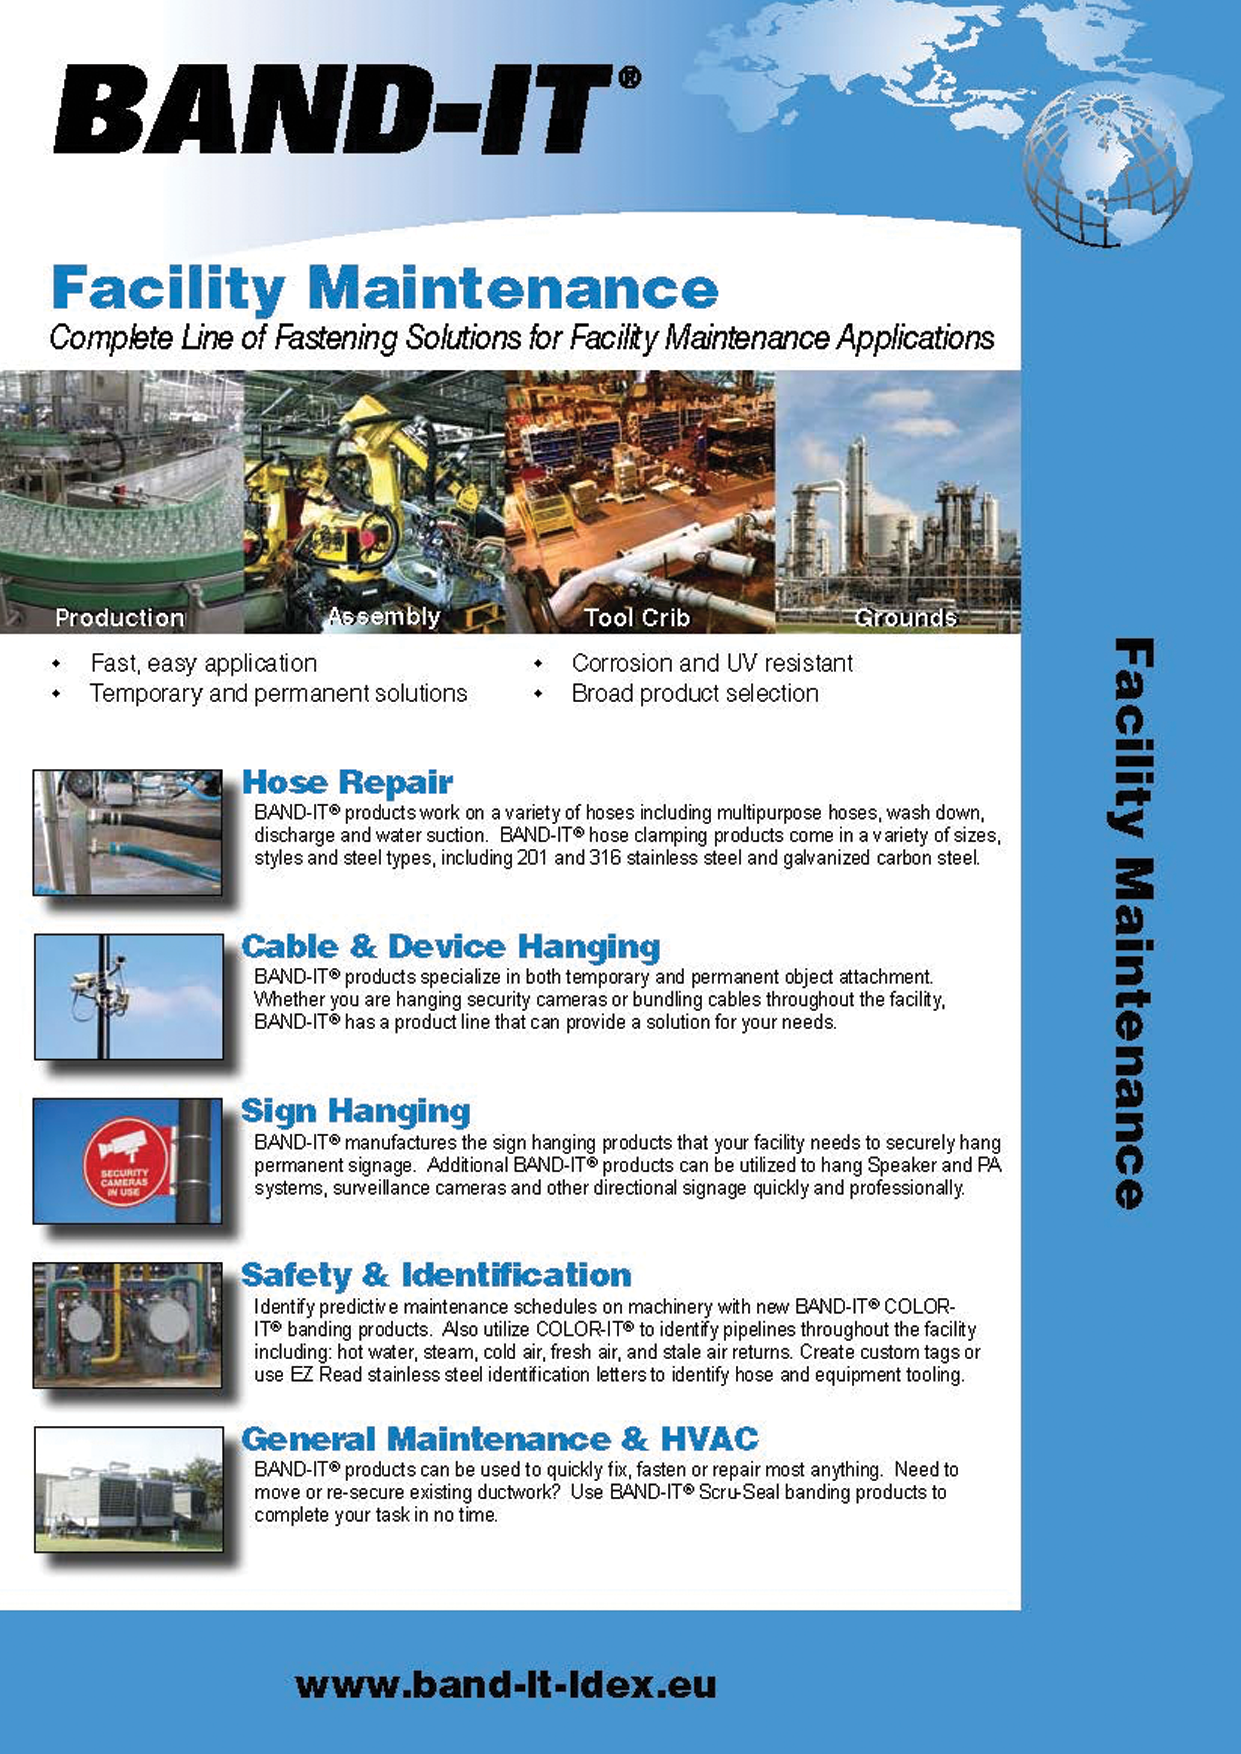 Facility Maintenance - Complete Line of Fastening Solutions for Facility Maintenance Applications